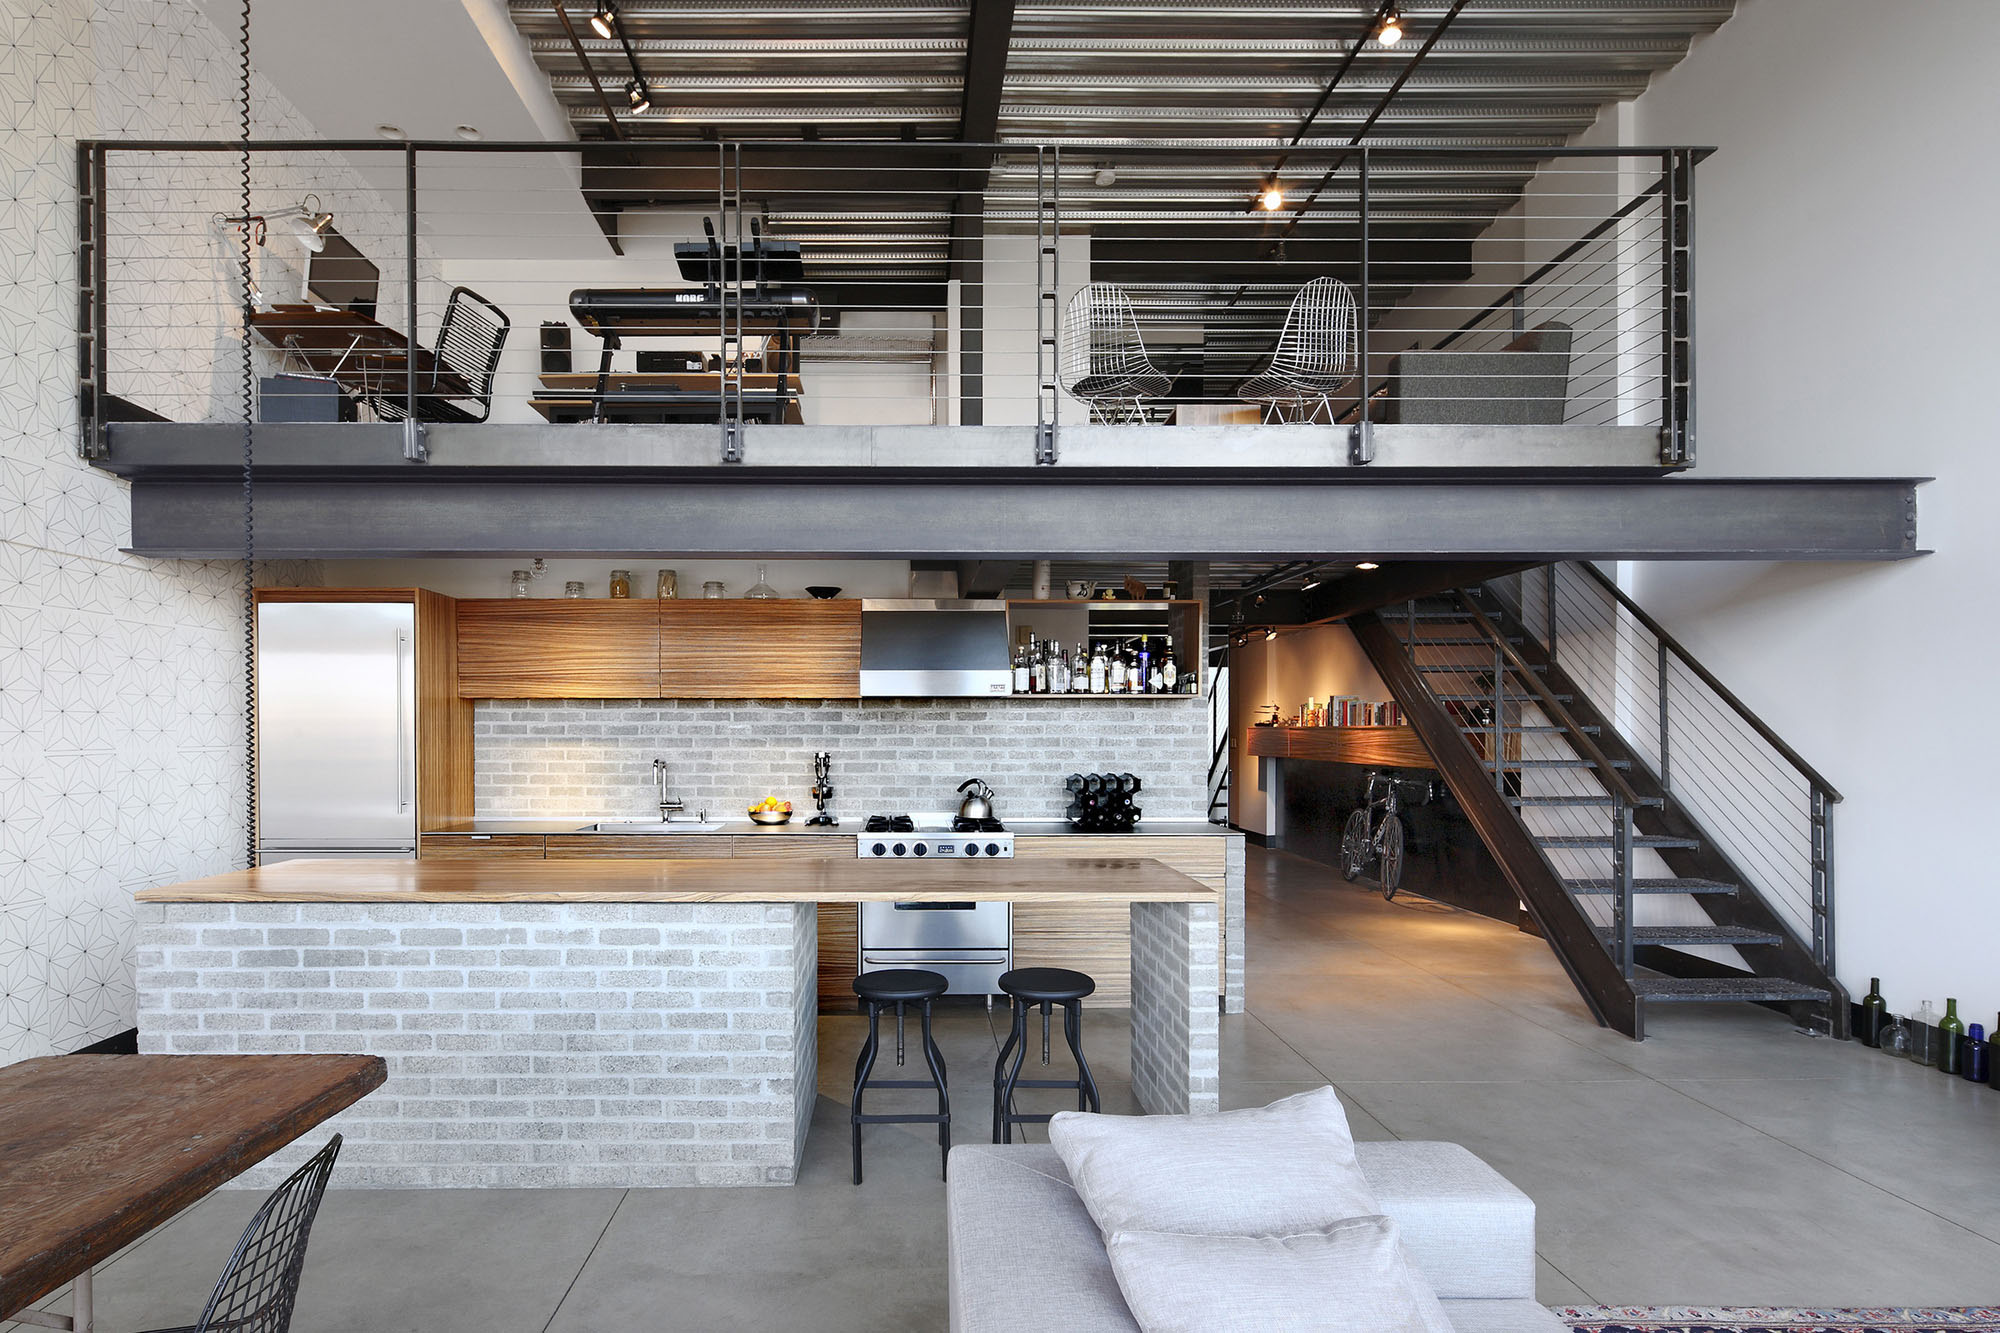 Custom Interior Design Interior custom loft-style condo in seattle with stylish industrial